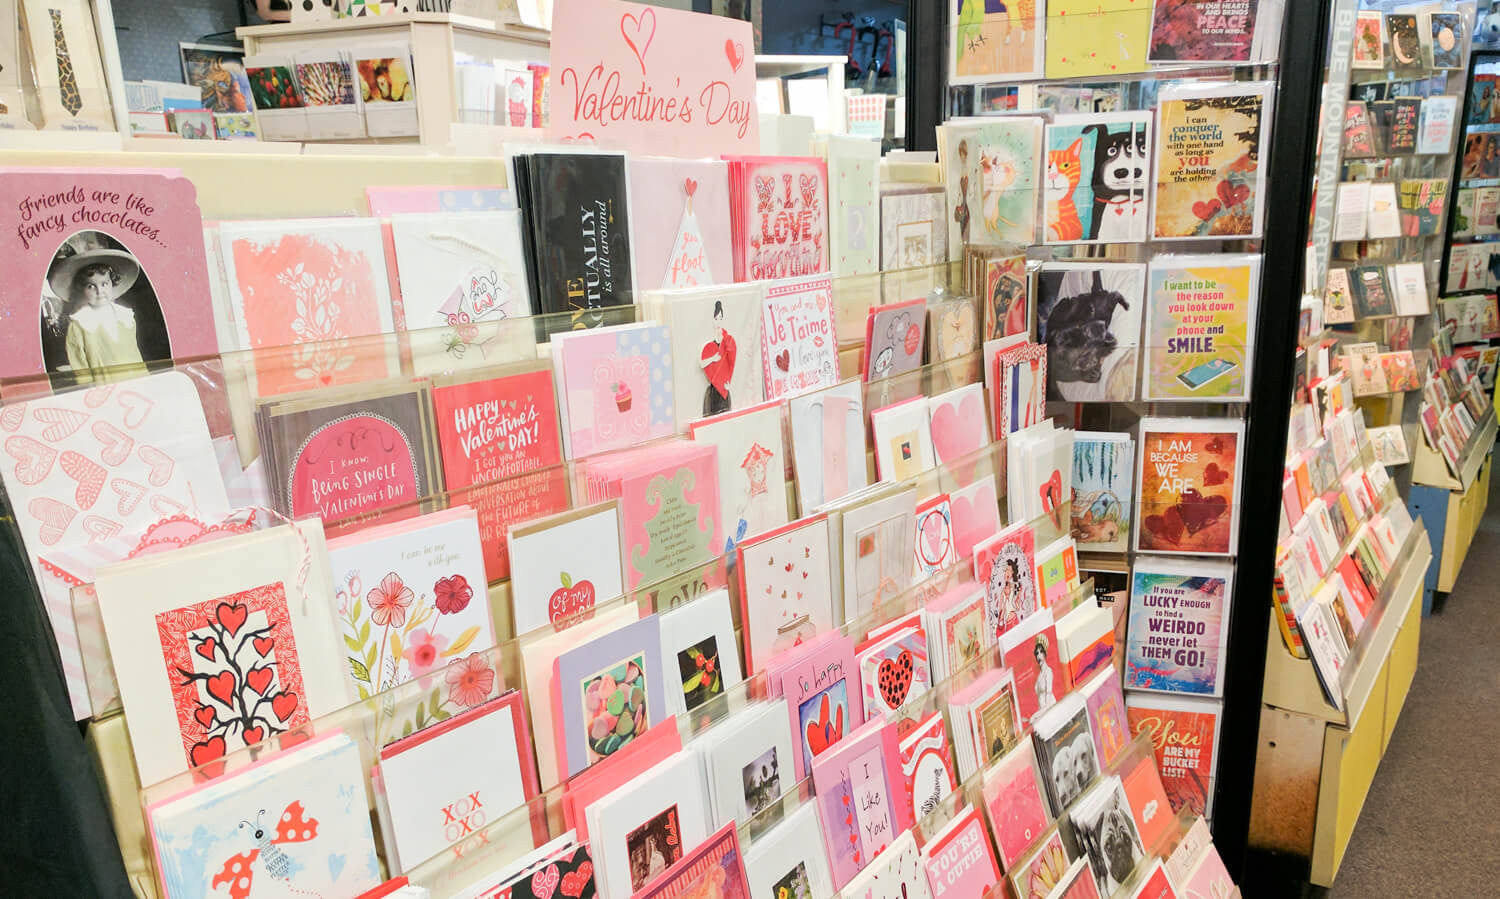 Petals and Postings in Kalamazoo, Michigan has the best selection of greeting cards and happy stationery!